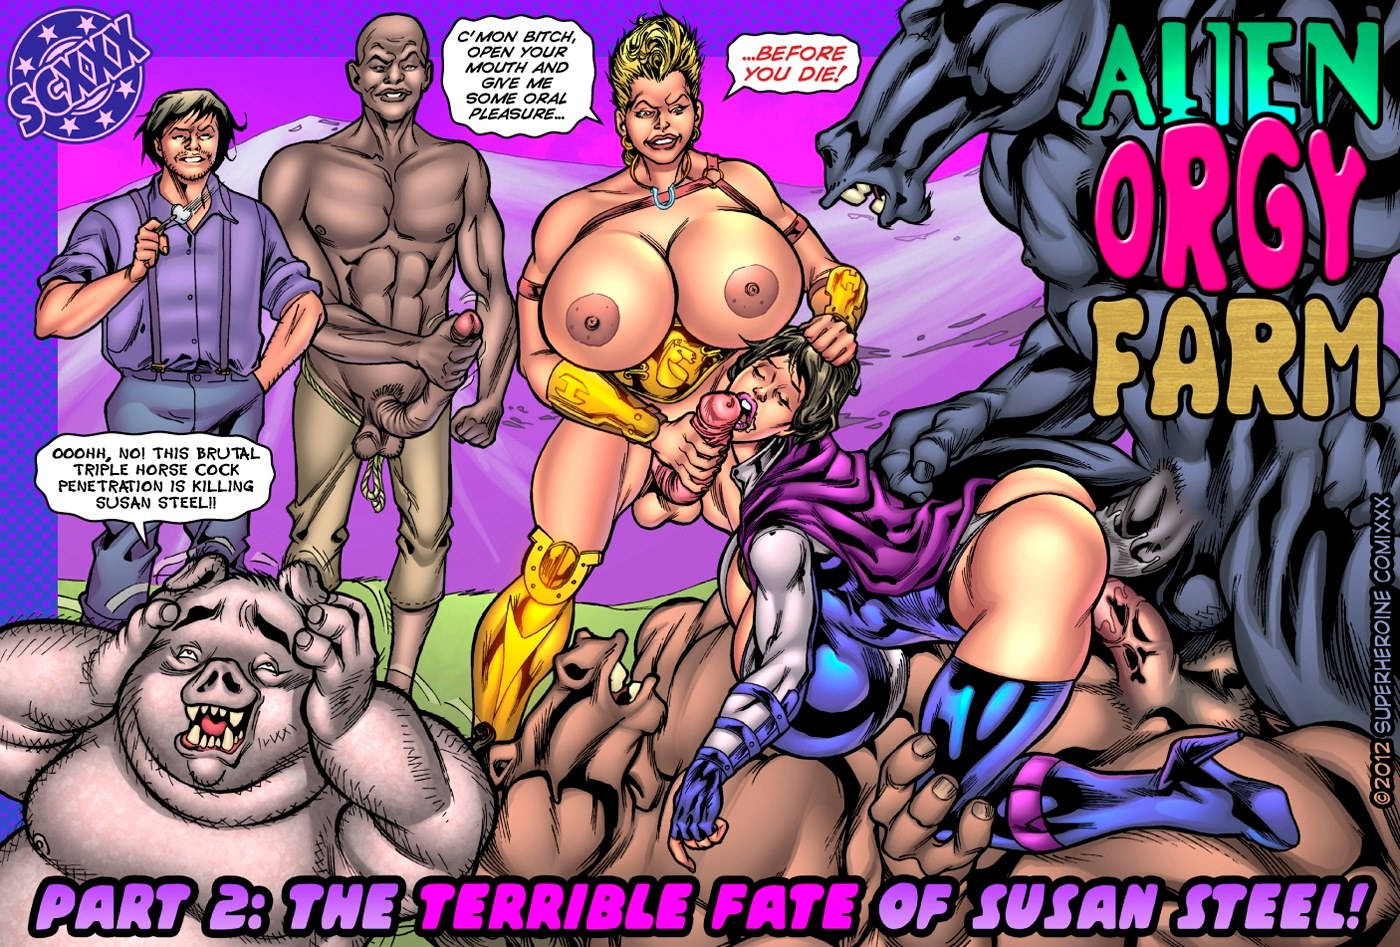 Alien Orgy Farm 2- Terrible Fate of Susan Steel porn comics 8 muses